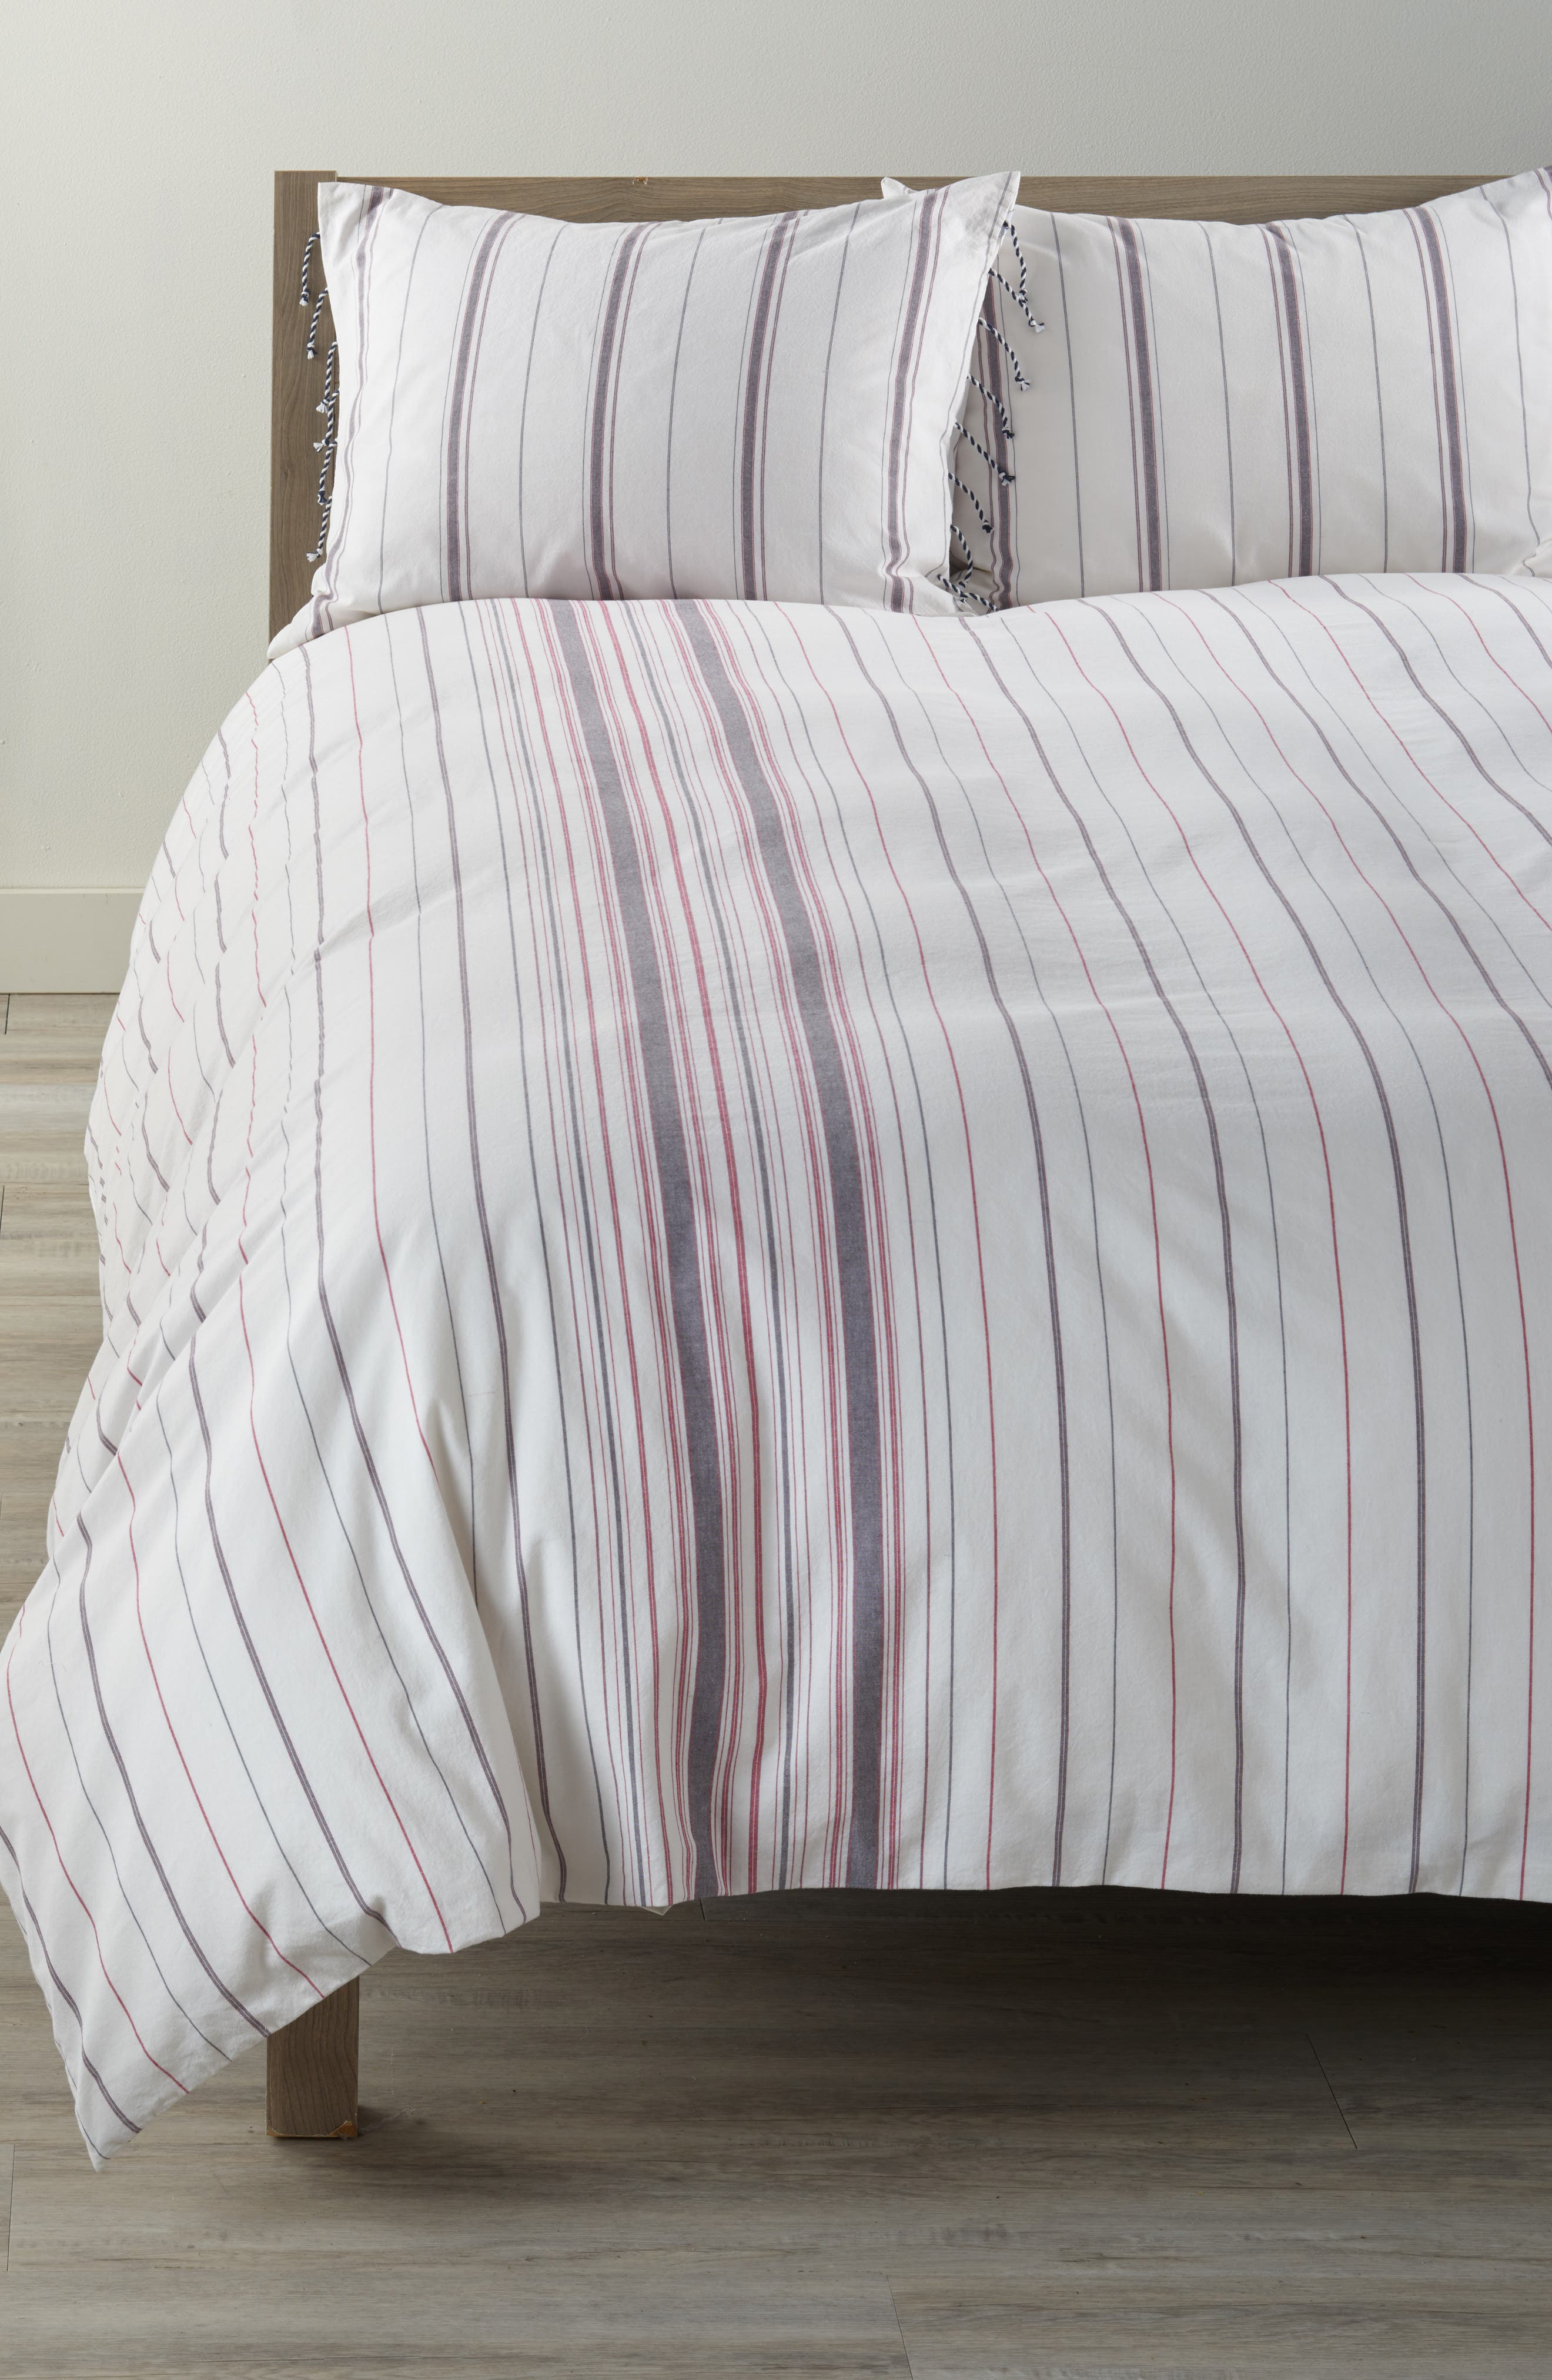 Mixed Stripe Duvet Cover,                         Main,                         color, 900